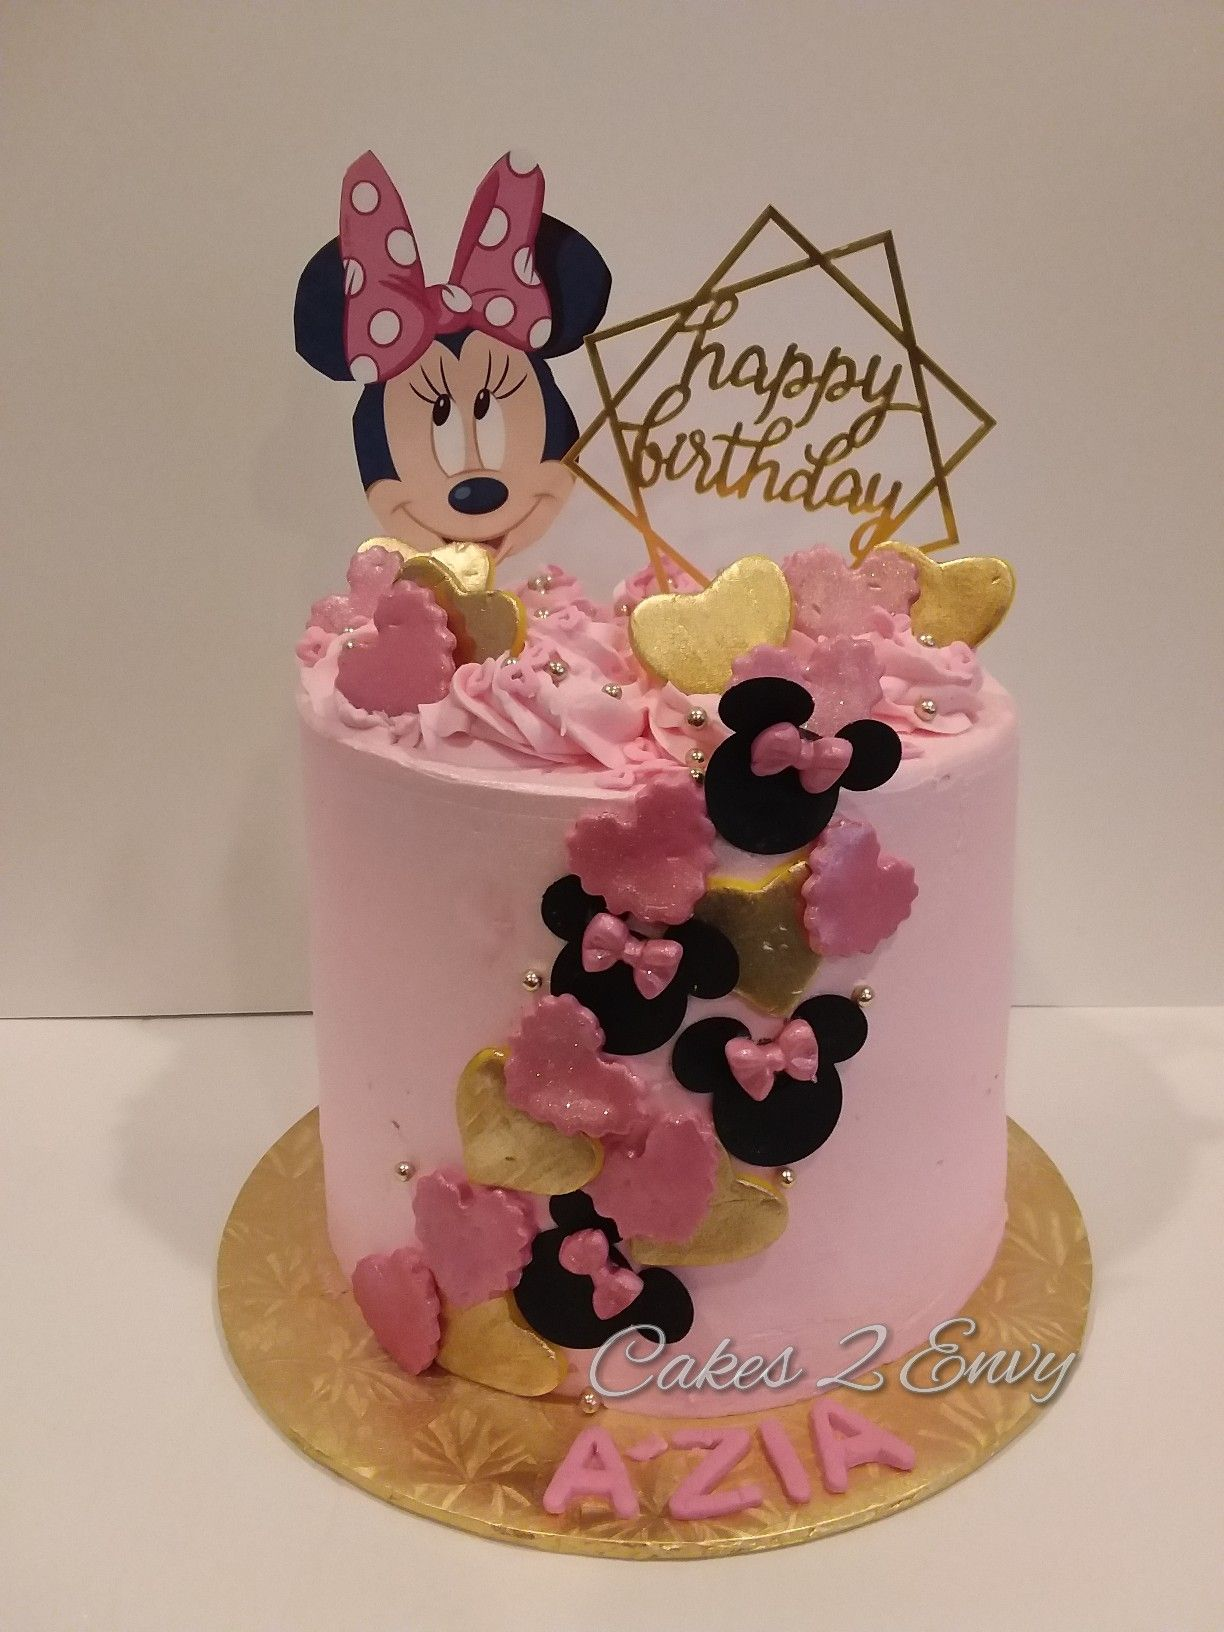 Pin On Cakes 2 Envy